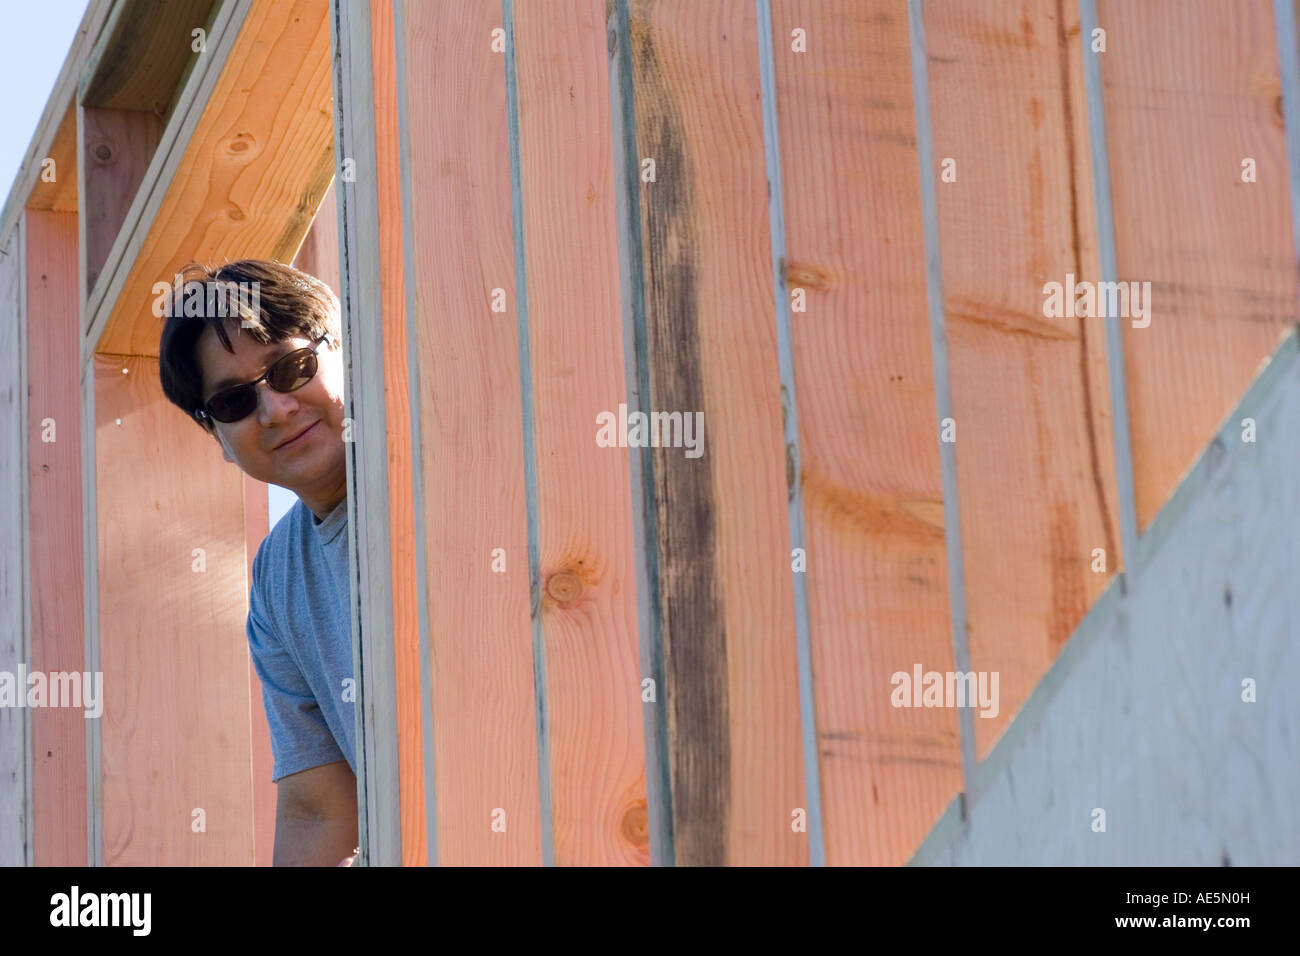 Man looking through a window in a wood framed wall at a residential construction site - Stock Image